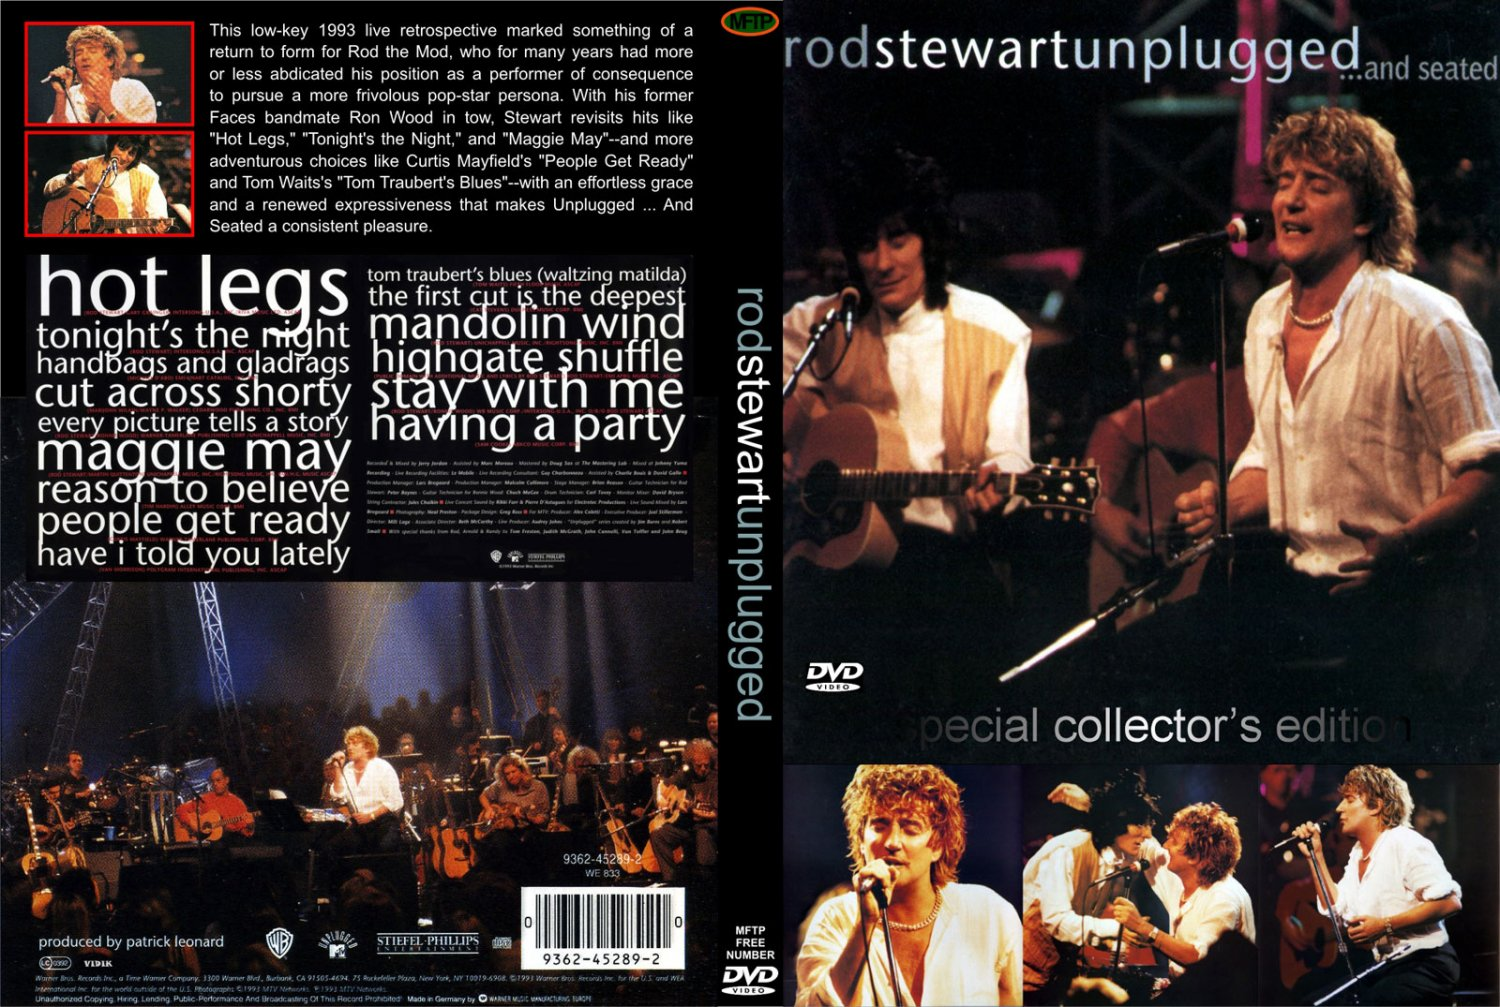 Rod Stewart - MTV Unplugged And Seated (1993)  DVD